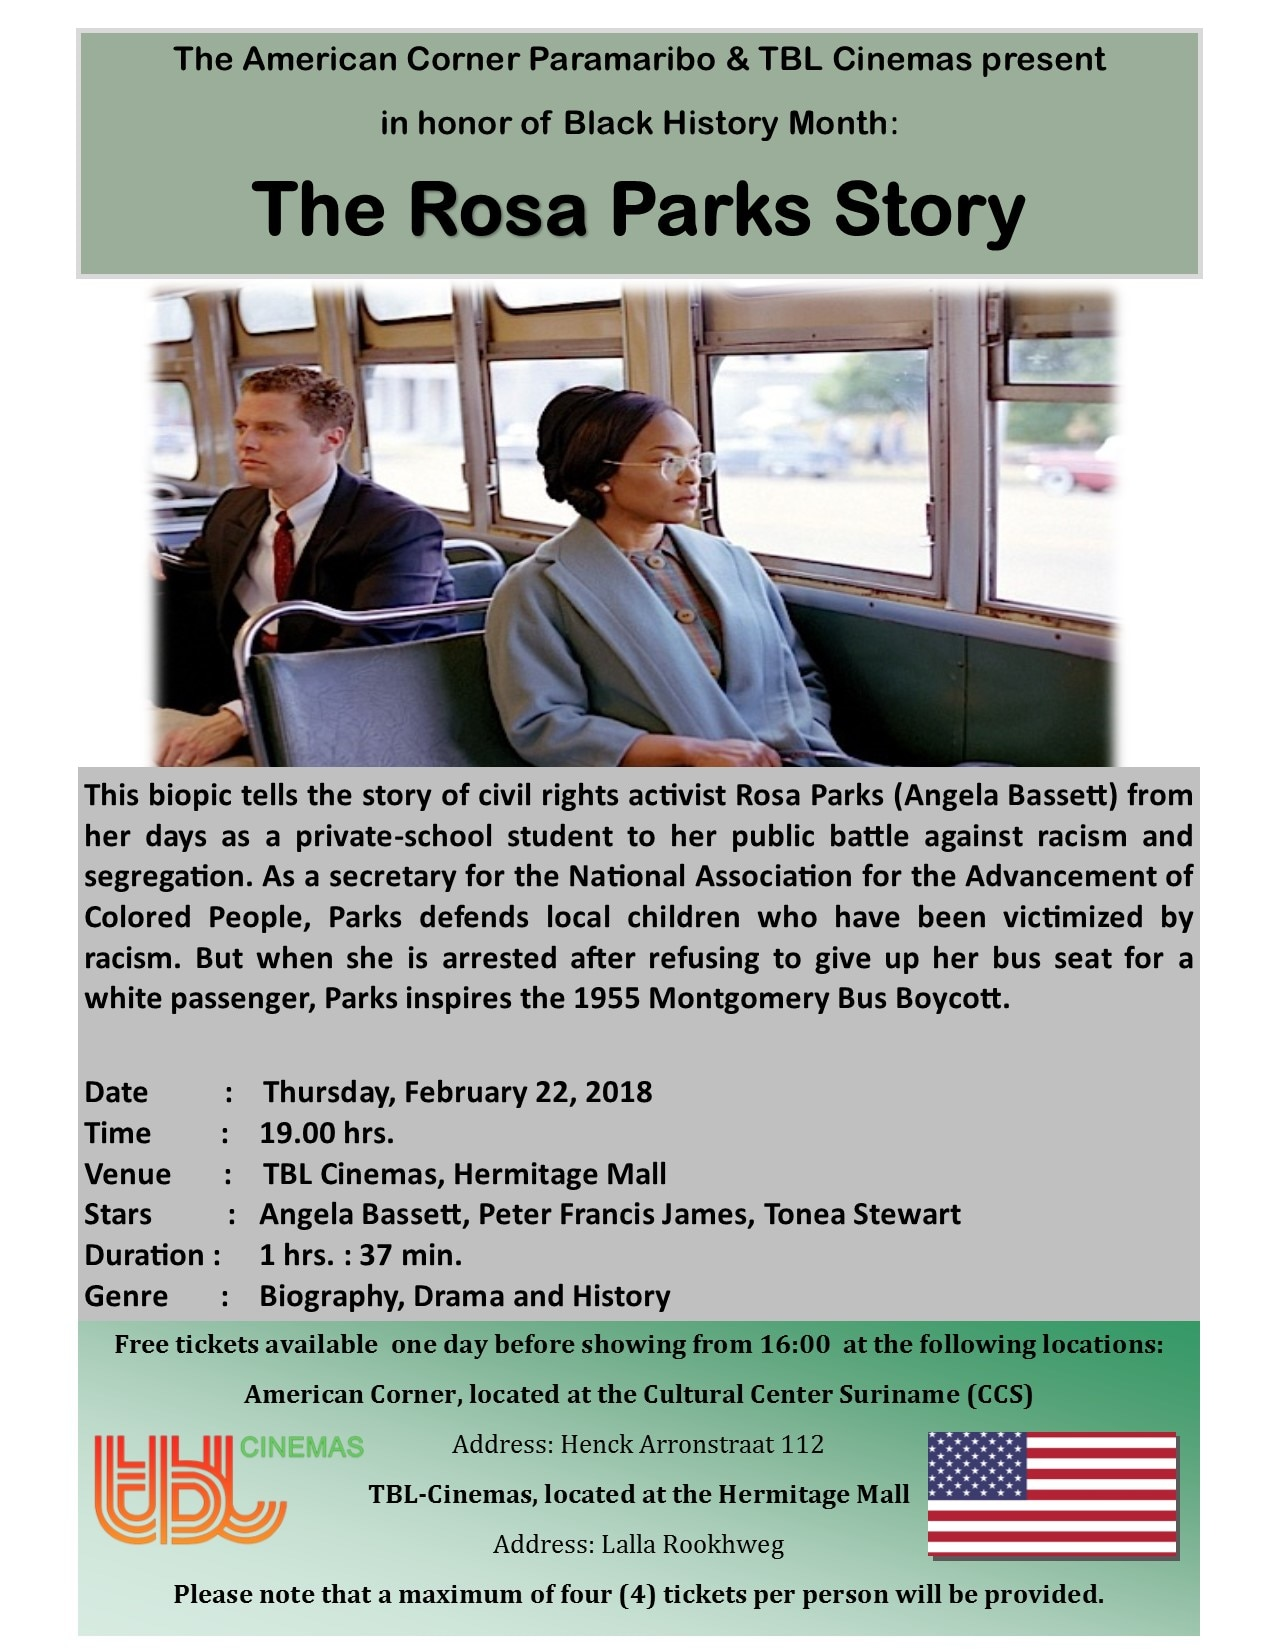 Movie Night The Rosa Parks Story U S Embassy In Suriname